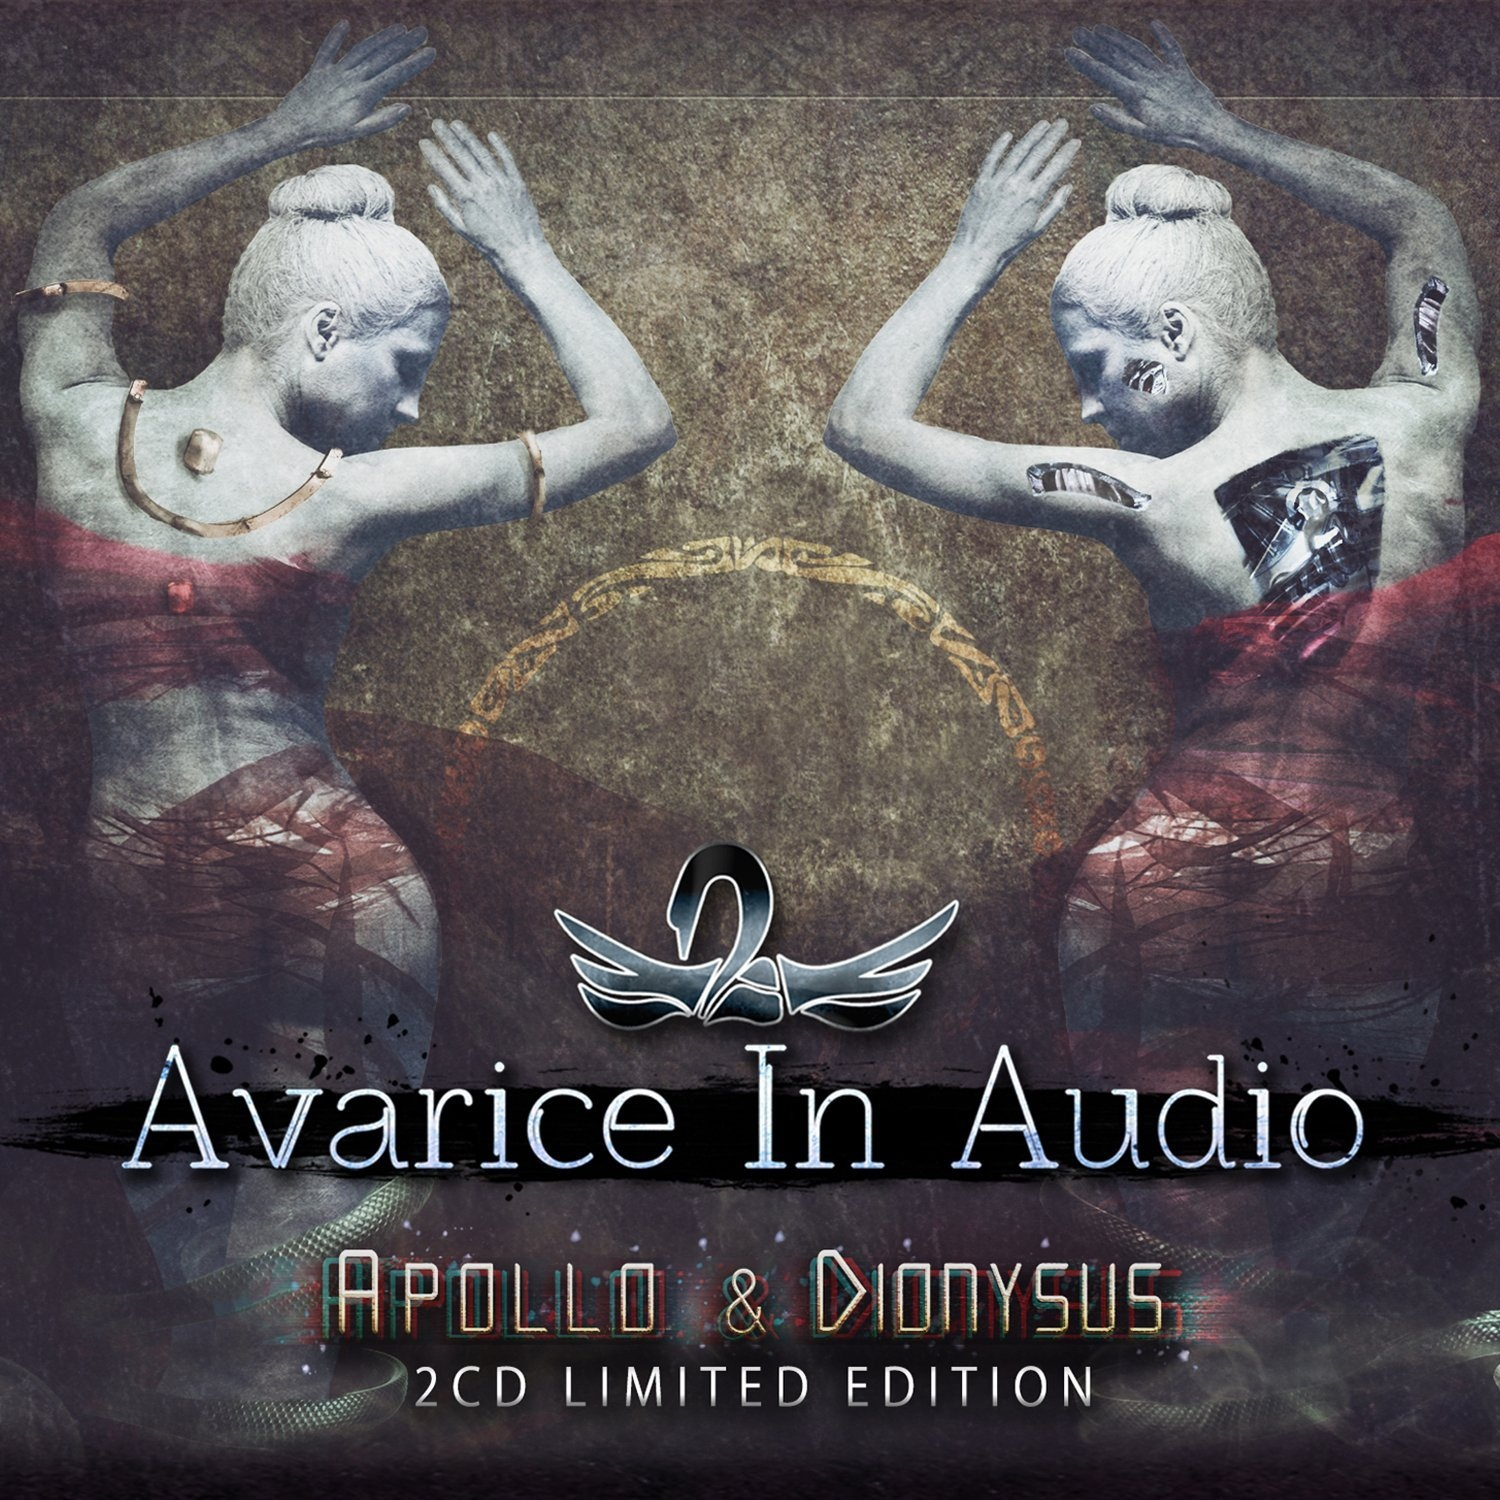 AVARICE IN AUDIO Apollo & Dionysus LIMITED 2CD BOX 2016 (VÖ 18.03)